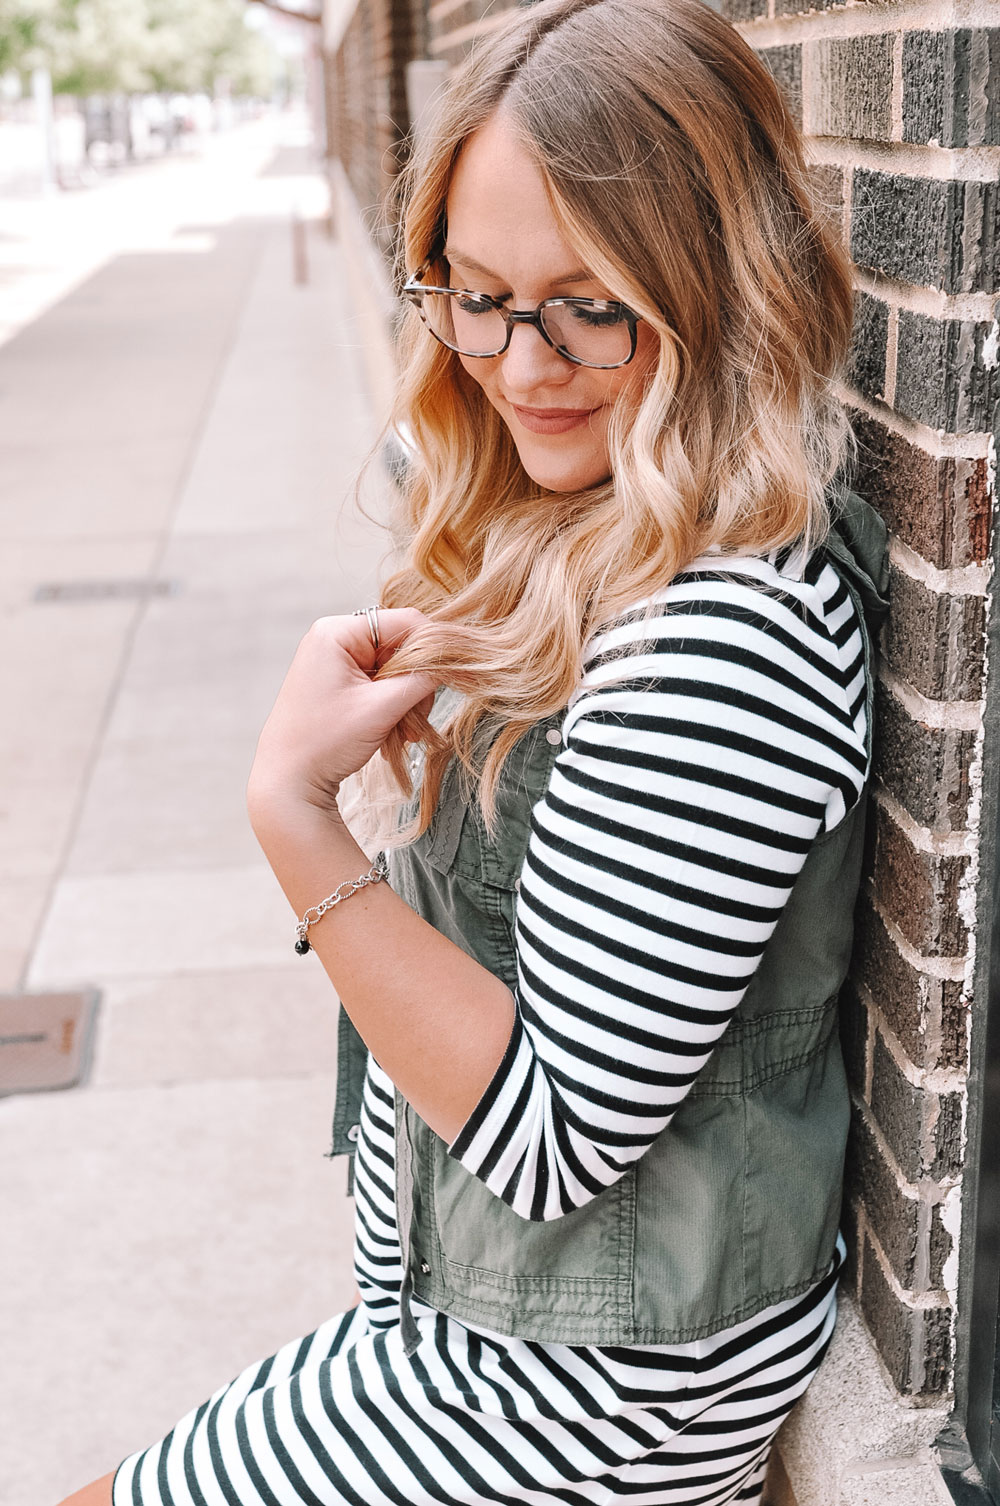 Oklahoma blogger Amanda Martin shows off her James Avery charm bracelet